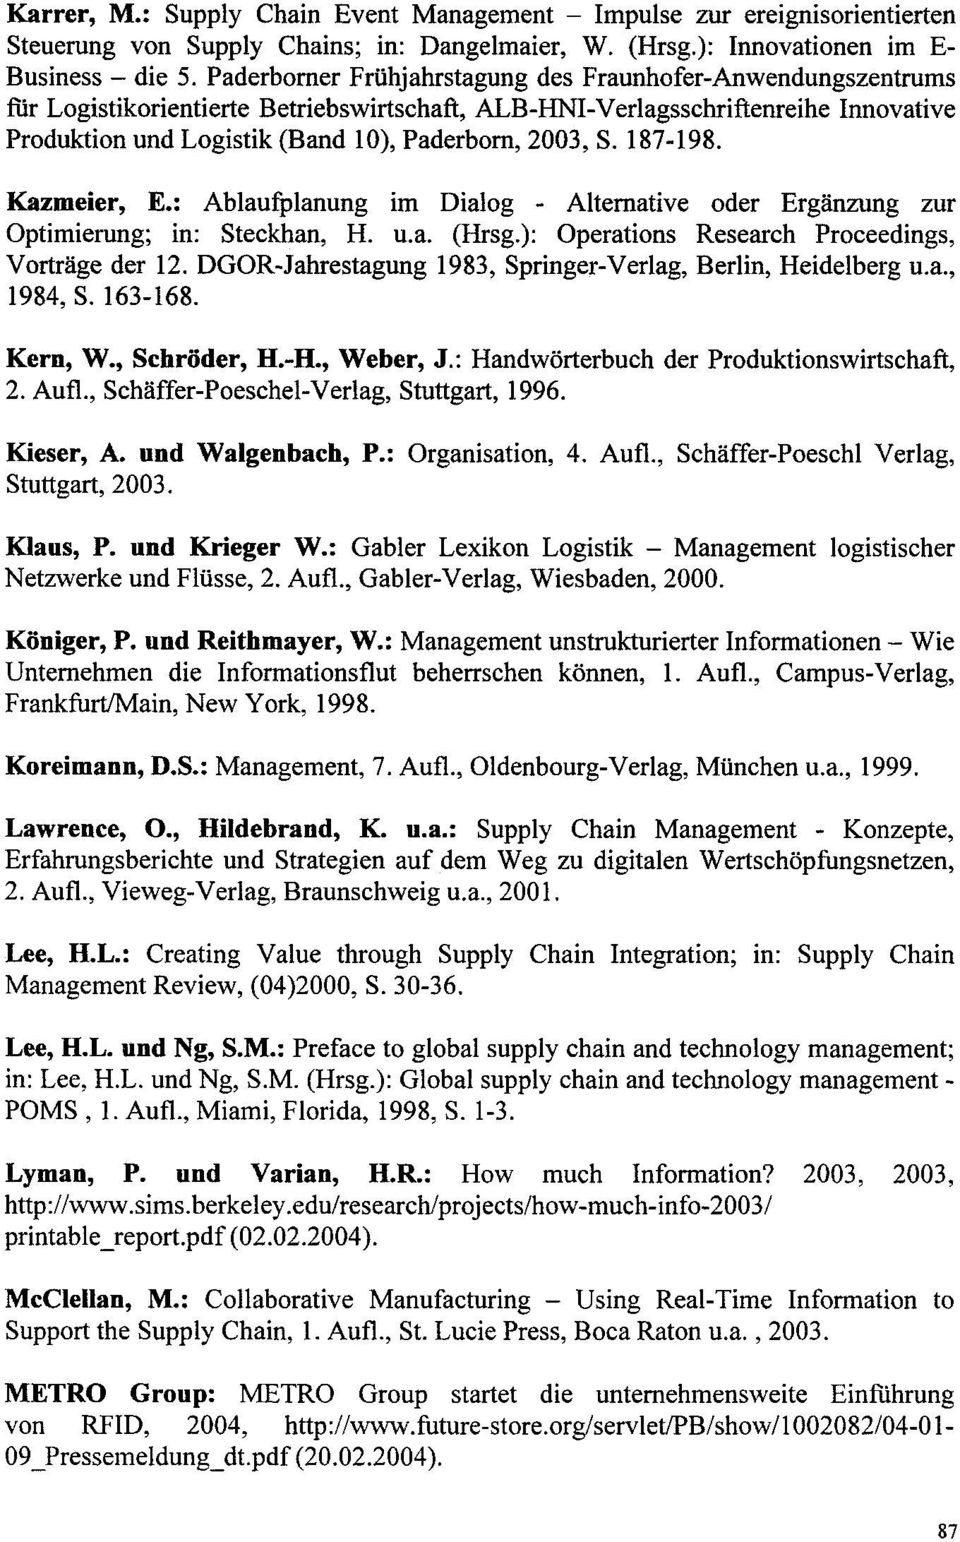 S. 187-198. Kazmeier, E.: Ablaufplanung im Dialog - Alternative oder Ergiinzung zur Optimierung; in: Steckhan, H. u.a. (Hrsg.): Operations Research Proceedings, Vortrage der 12.